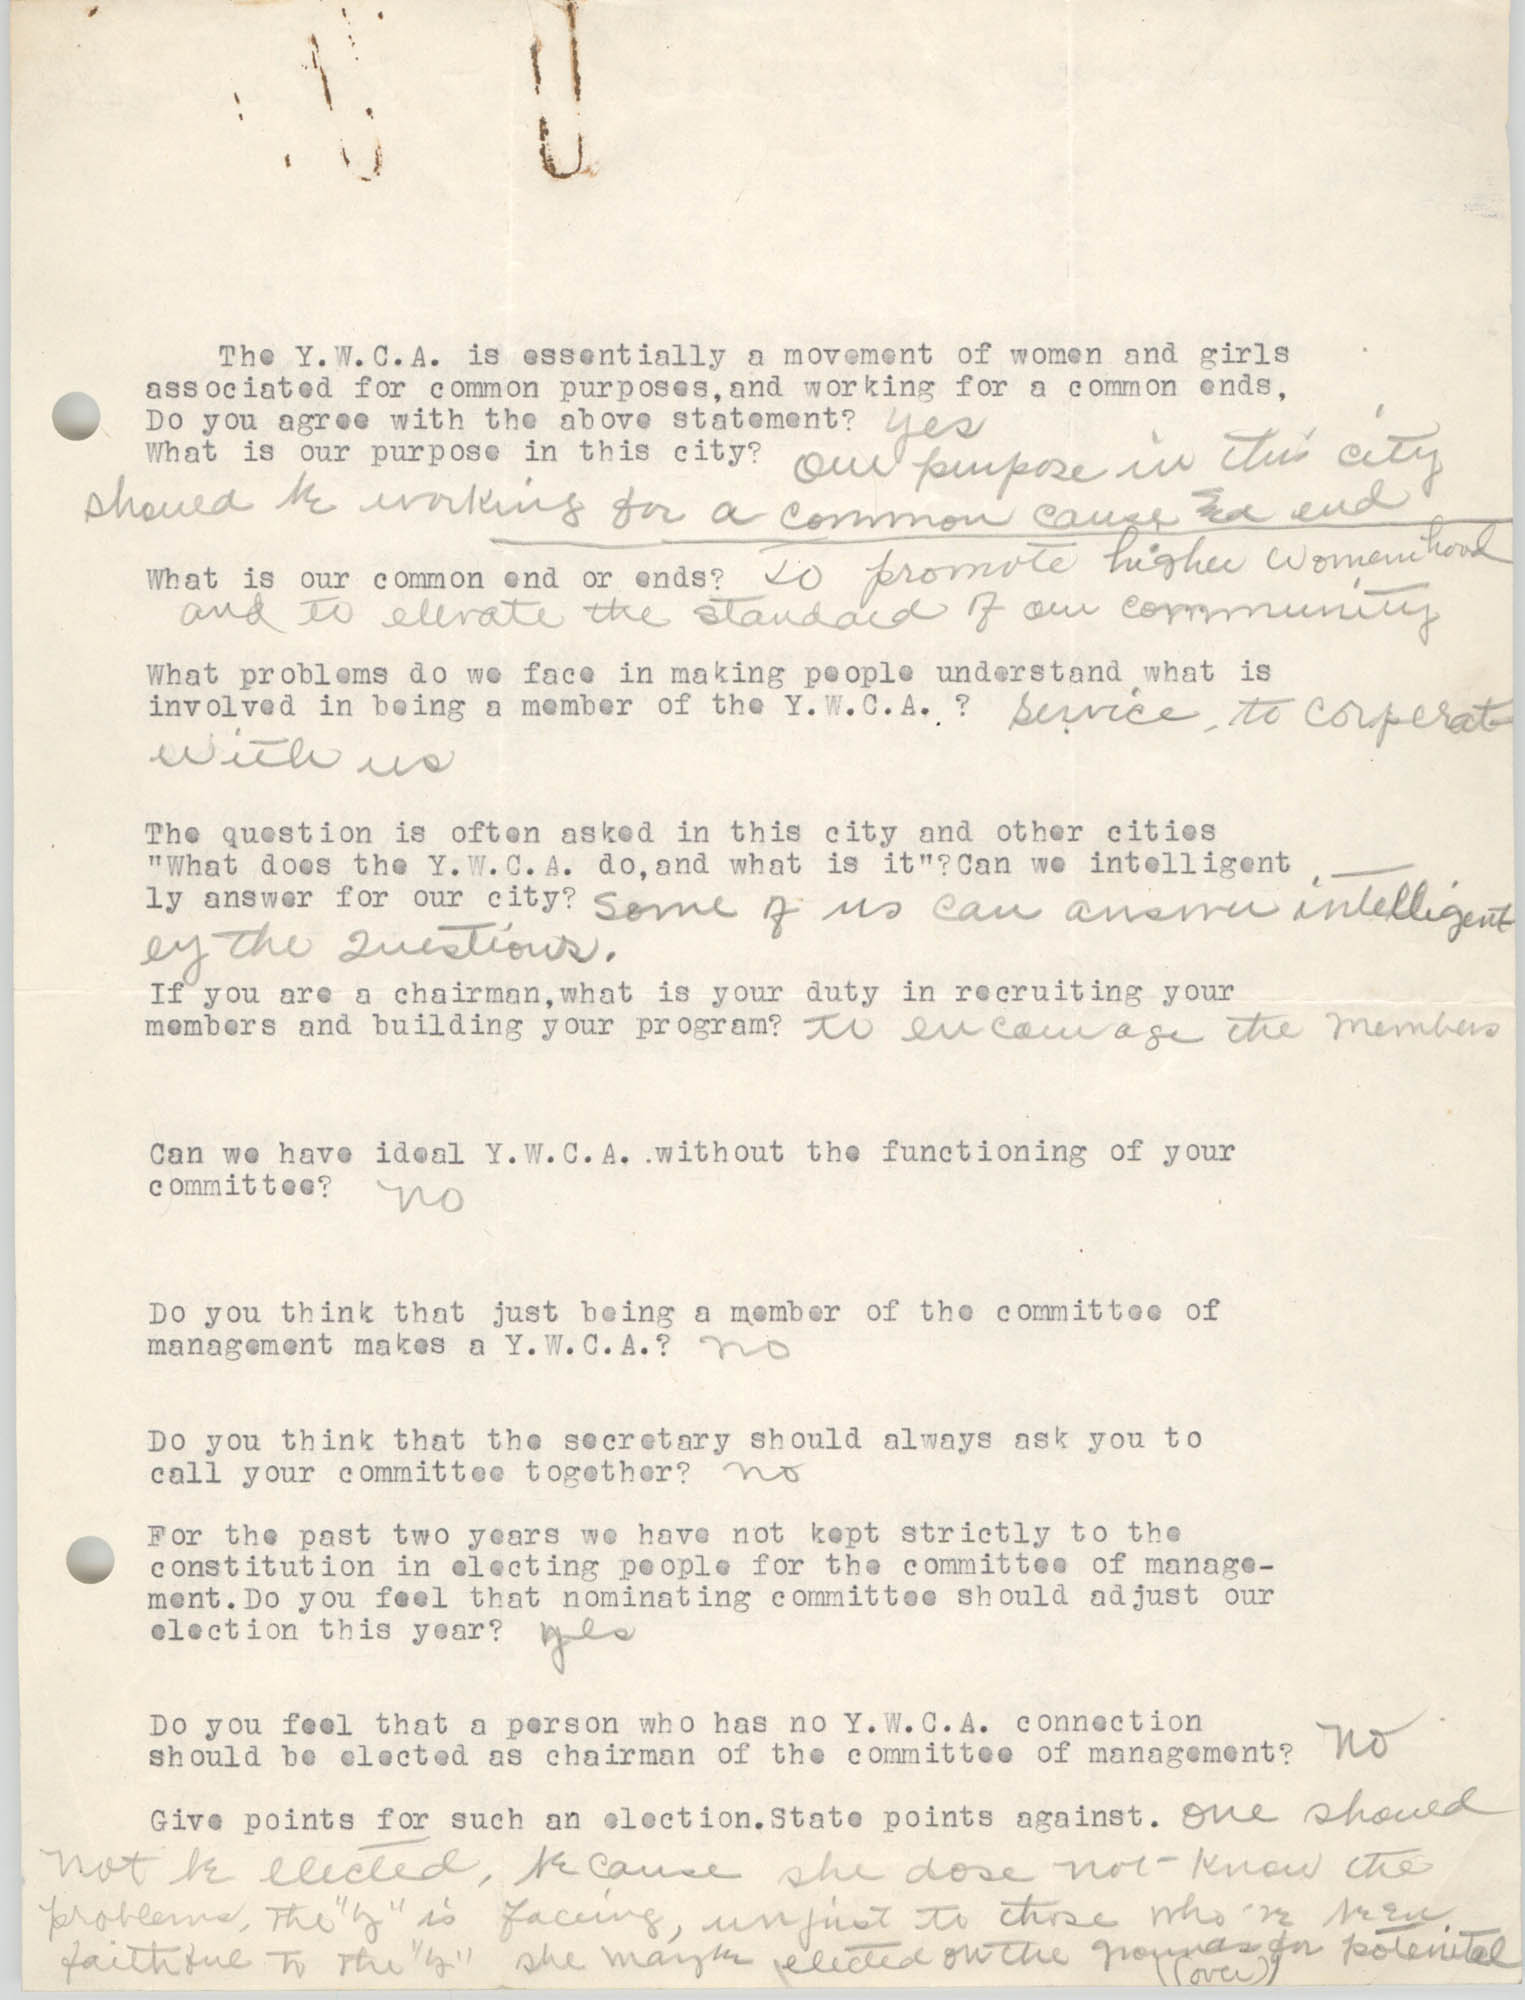 Coming Street Y.W.C.A., Completed Questionnaire Number 11, Page 1